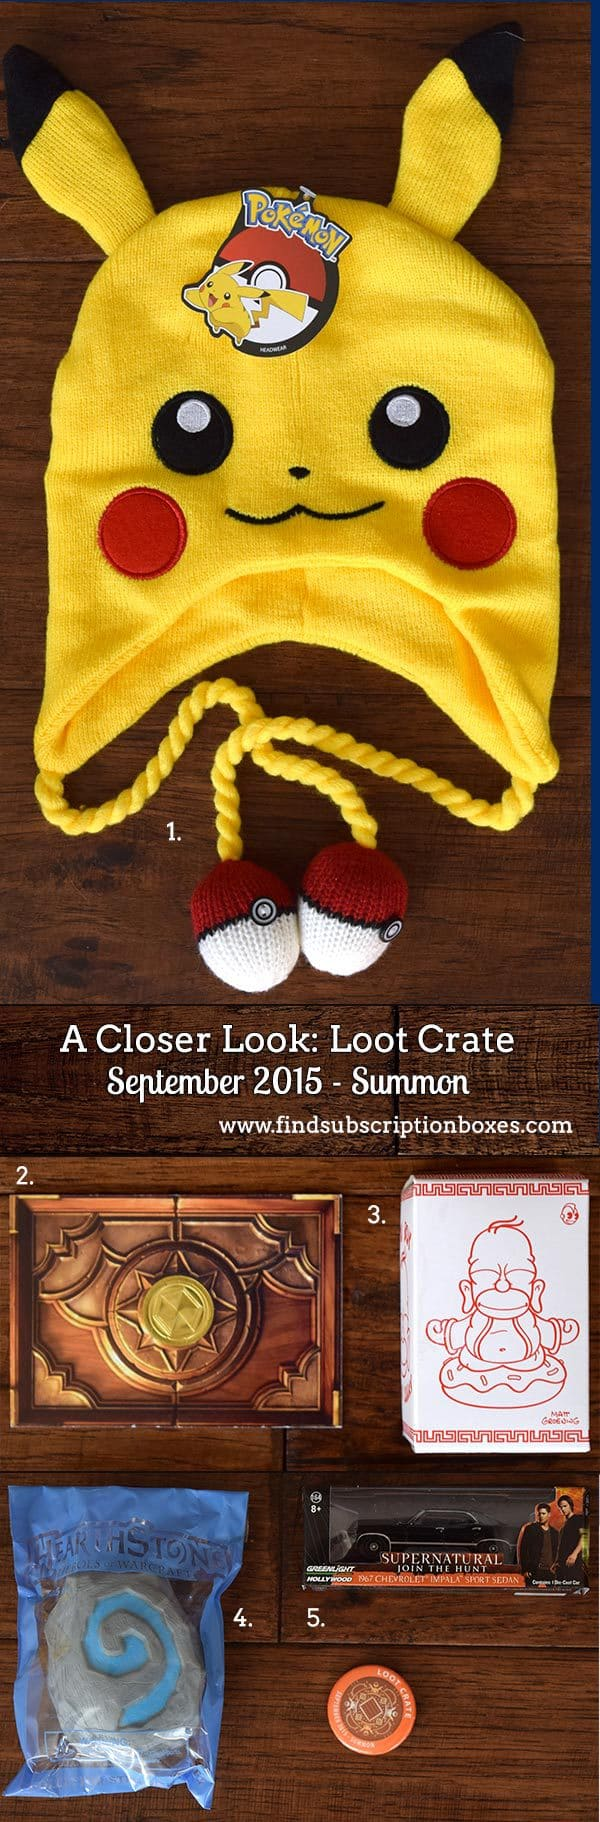 Inside the Loot Crate September 2015 Summon Crate